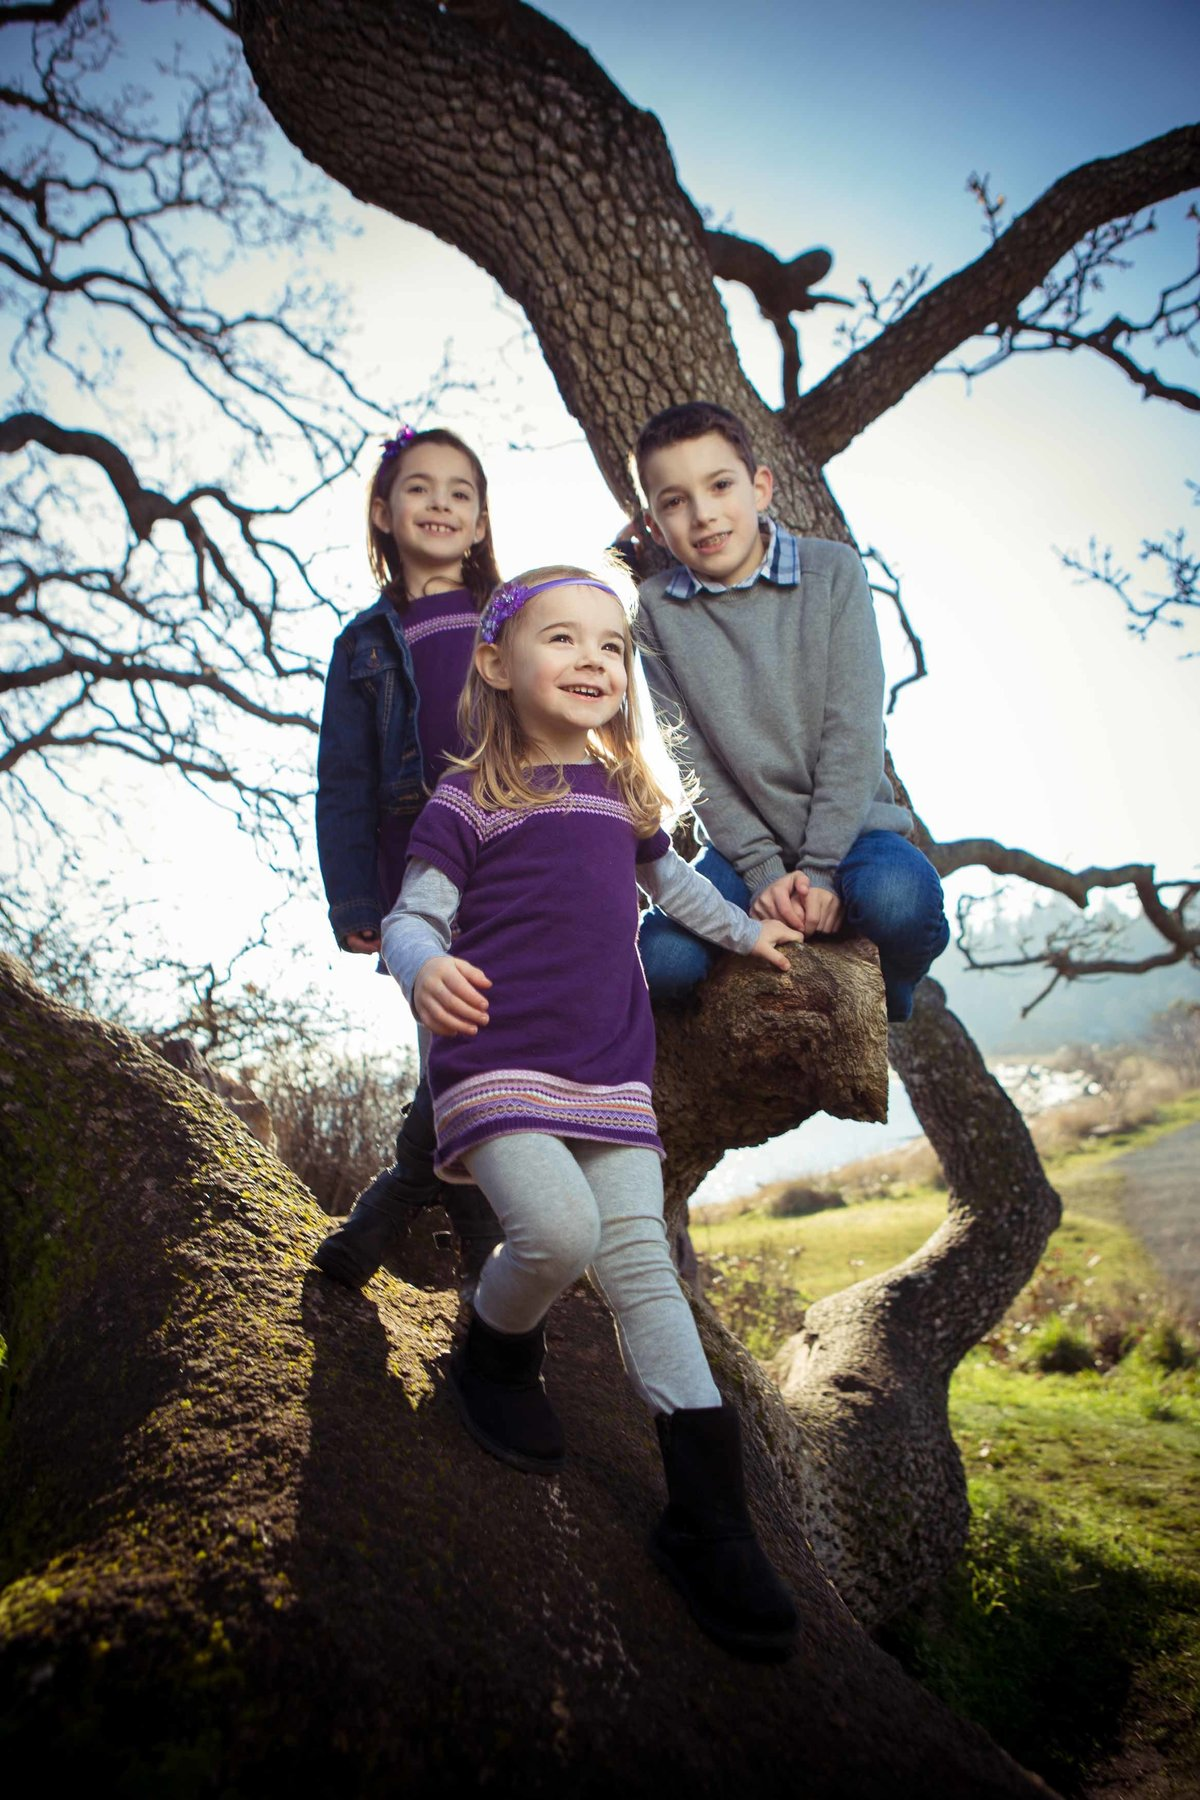 Kids on Tree at Pipers